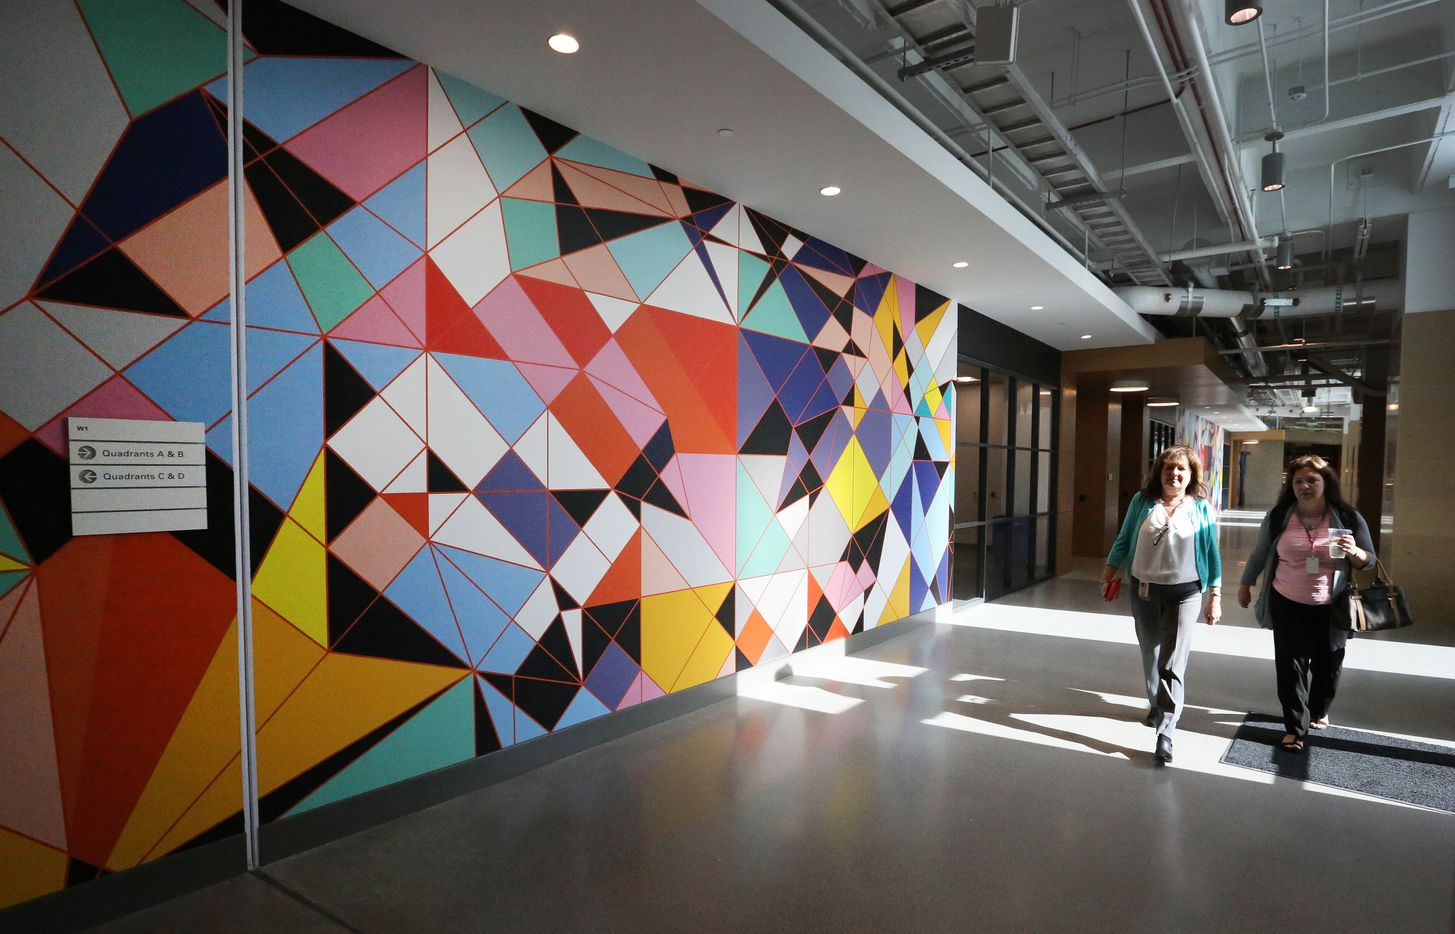 Colorful artwork decorates the walls of the Toyota headquarters.